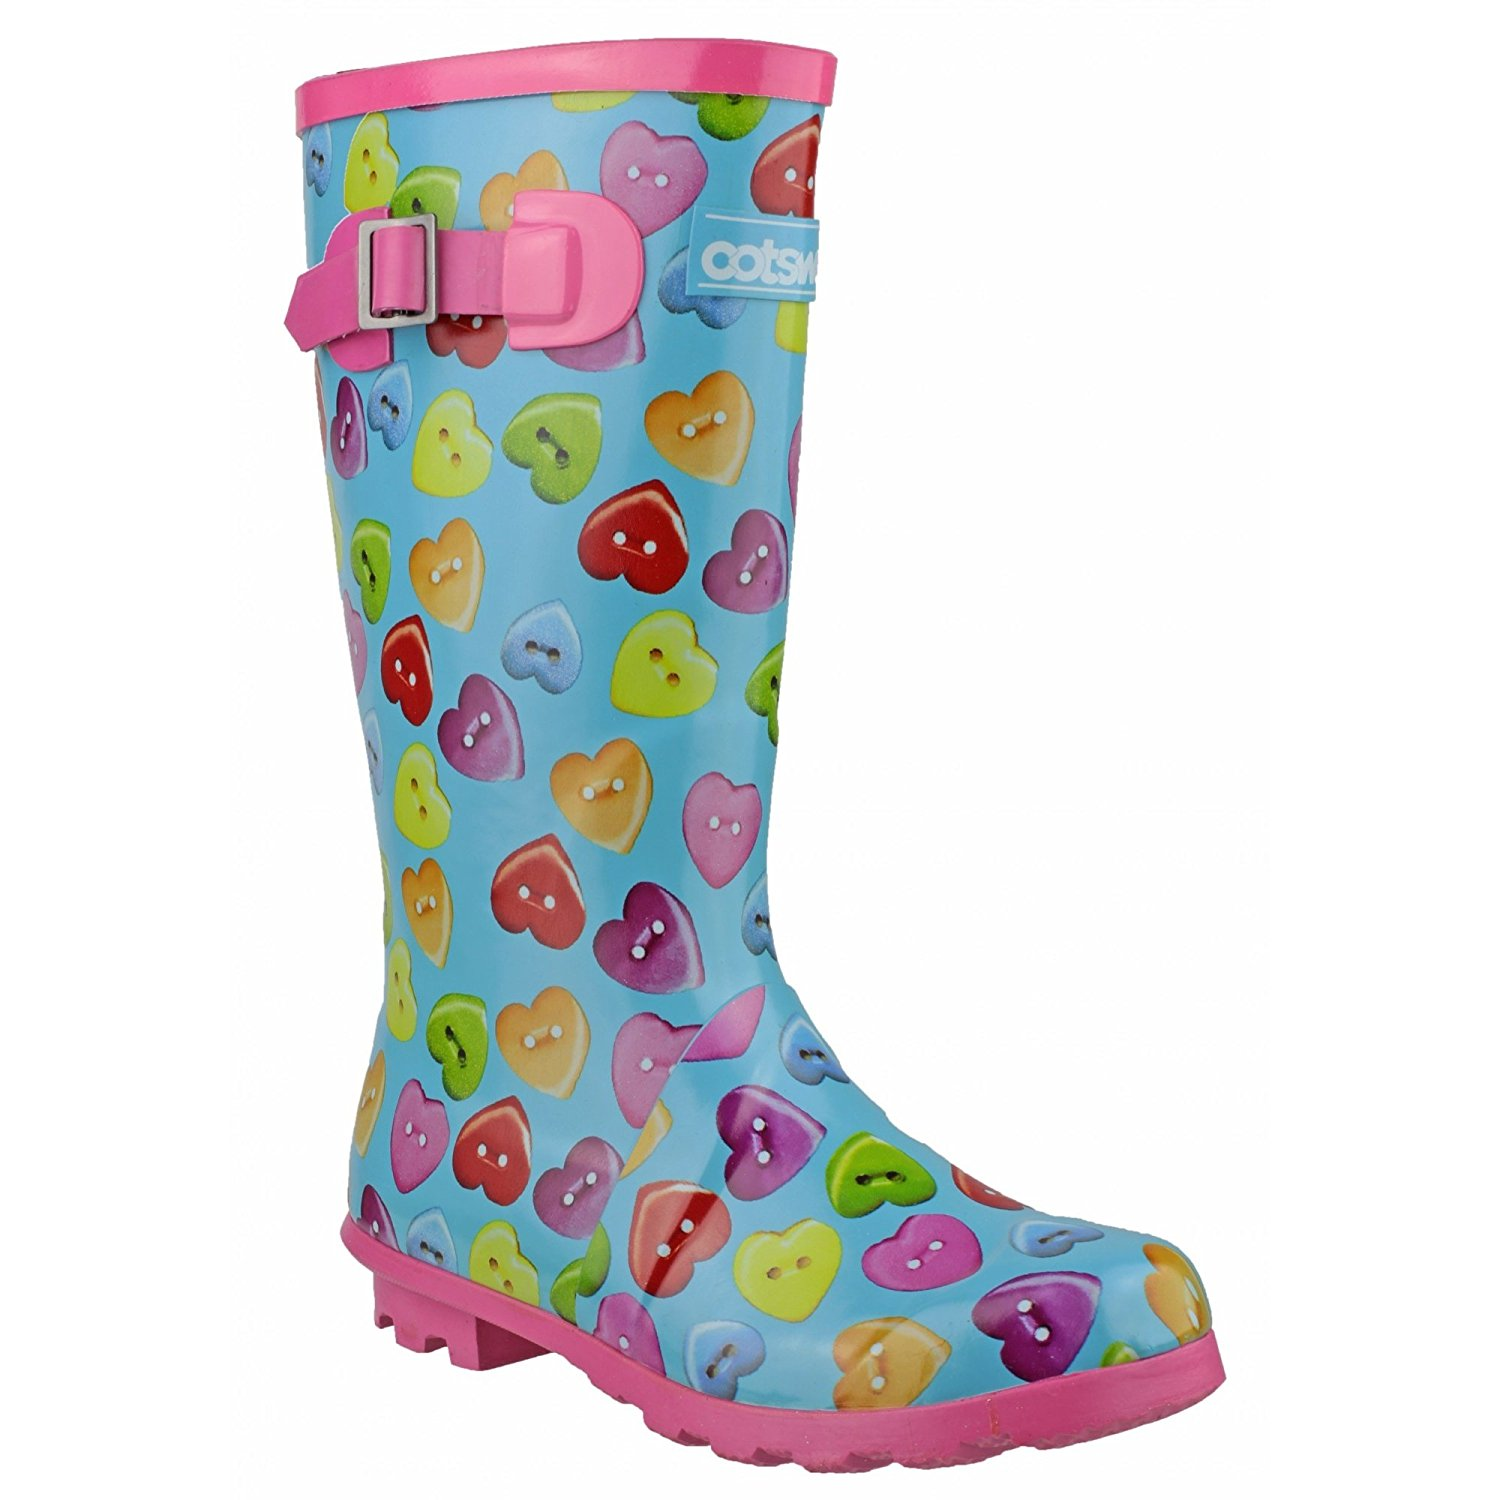 Cotswold Rainbow Multicoloured Childrens Wellingtons Rubber